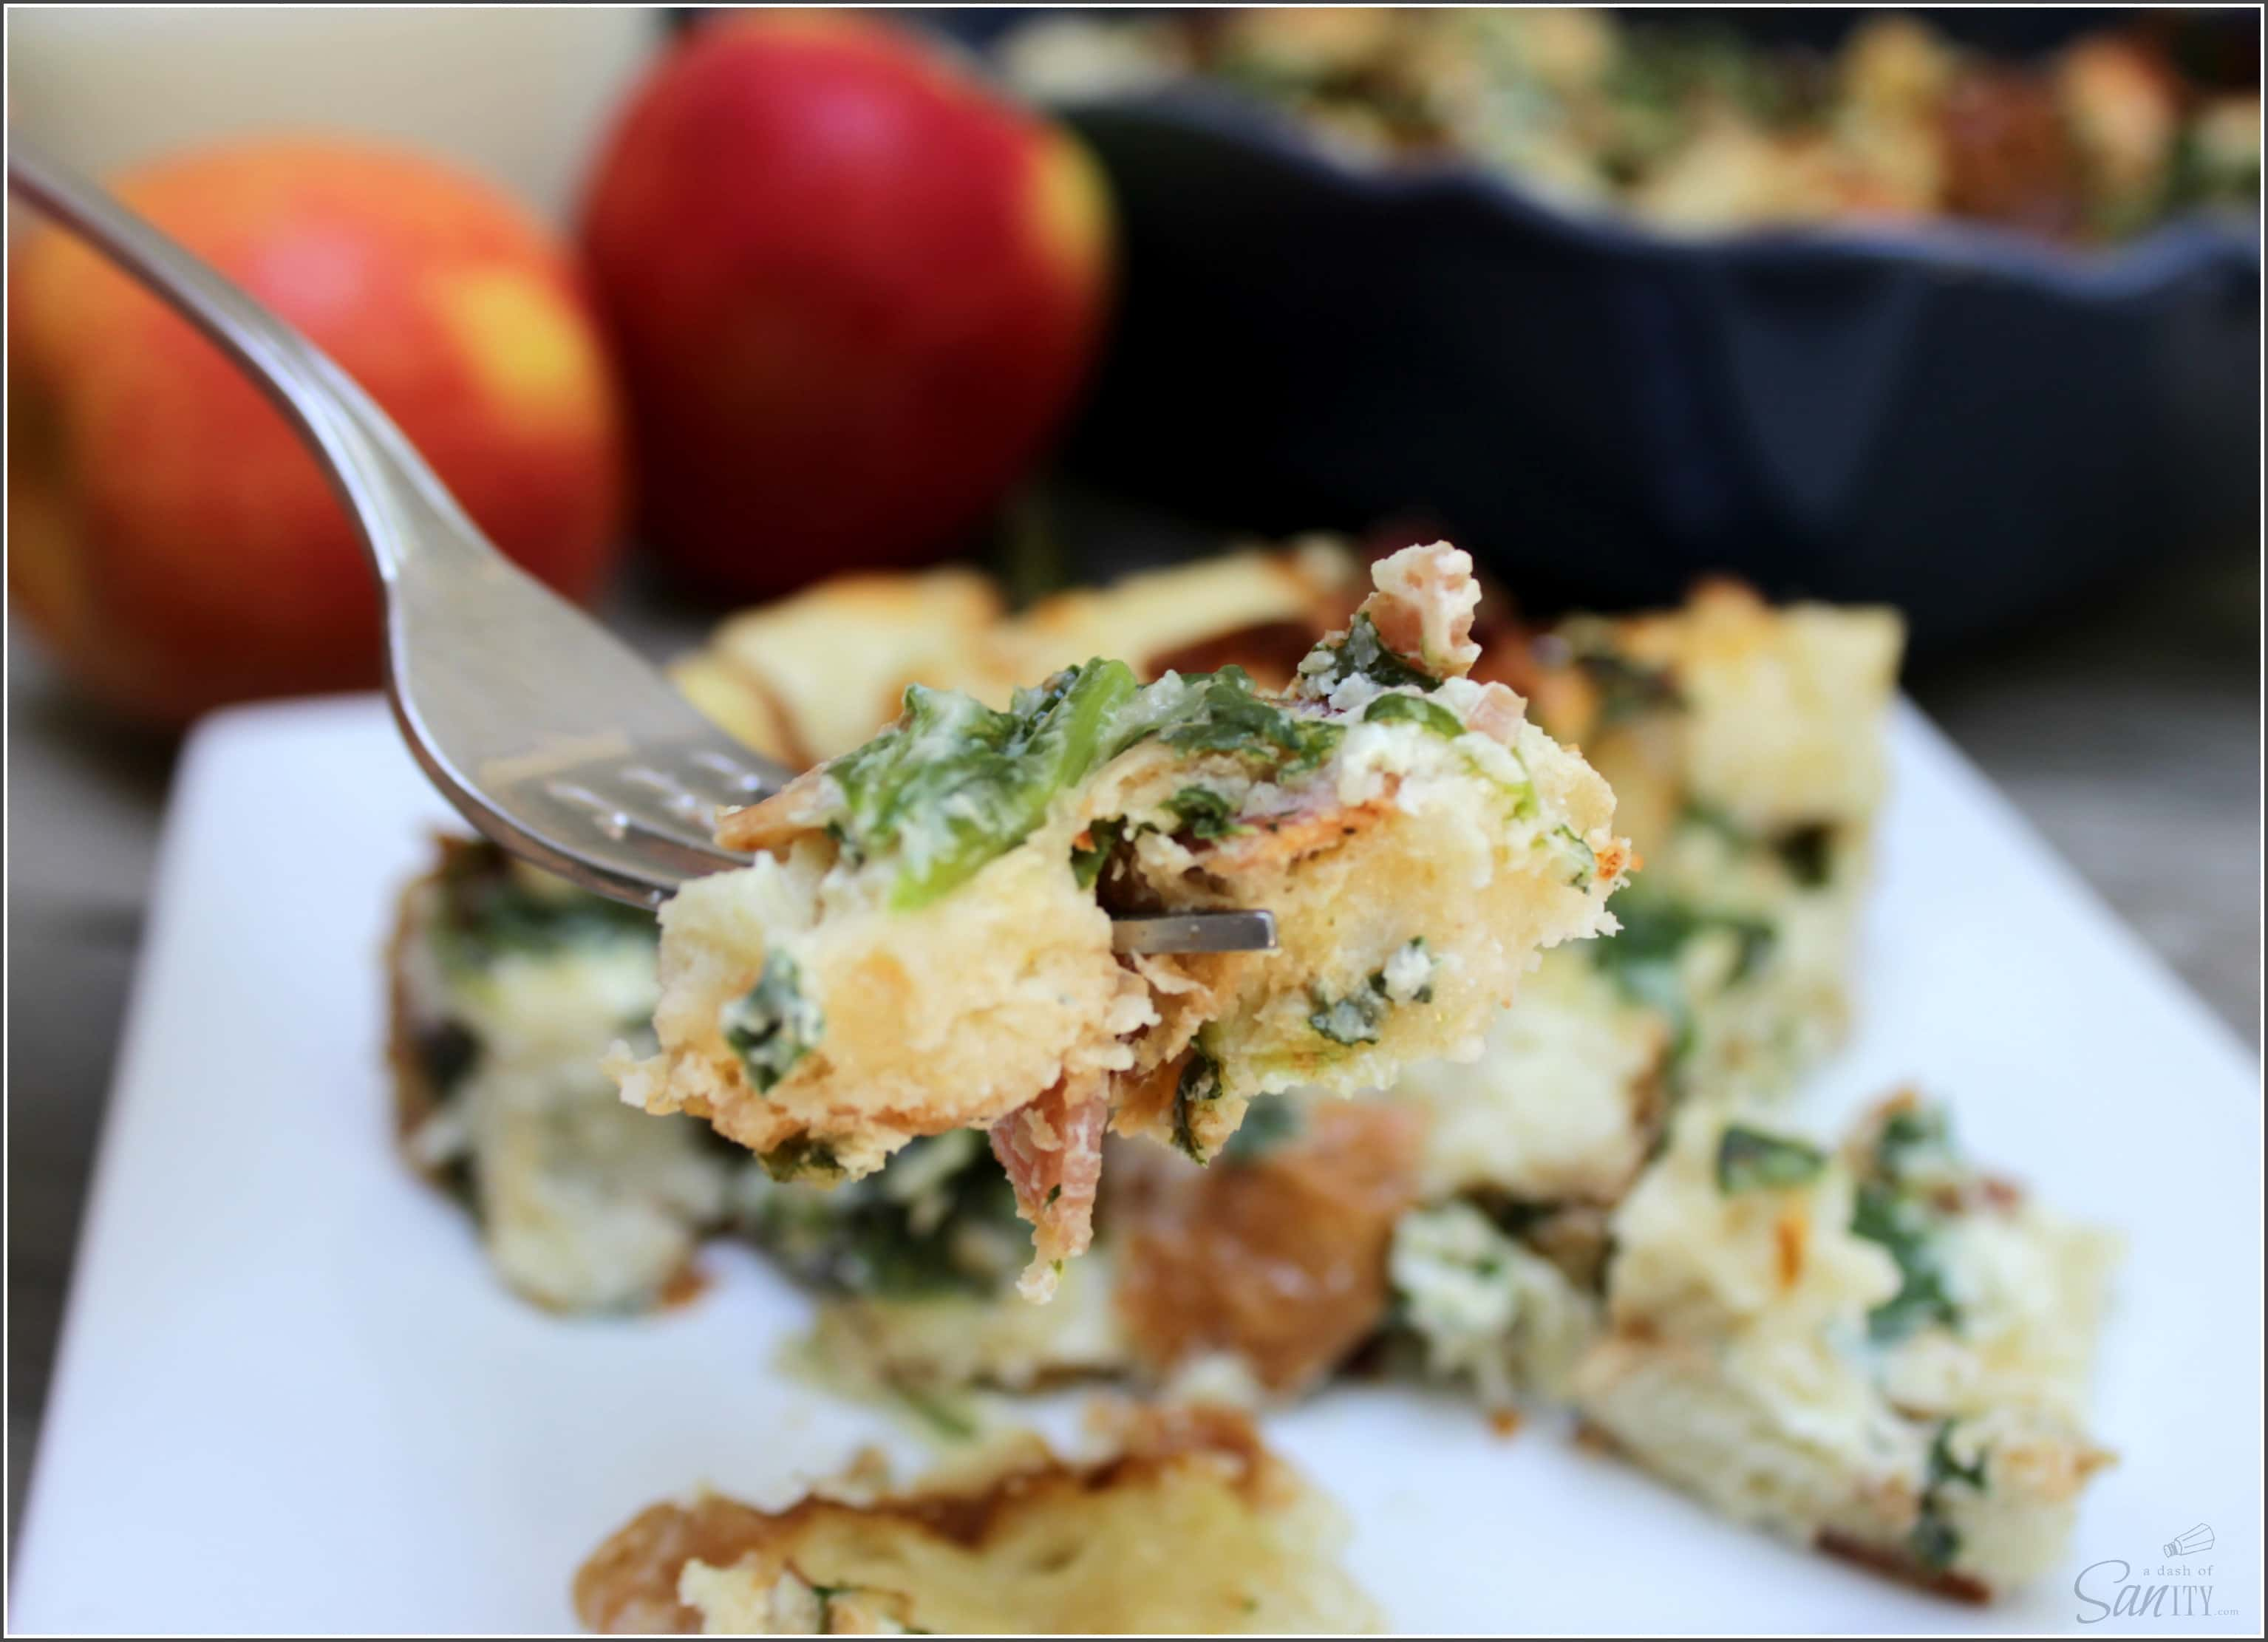 This Simple Egg White Breakfast Casserole has many layers of flavor with just a few ingredients, including bacon, spinach, egg whites, & smoked Gouda.